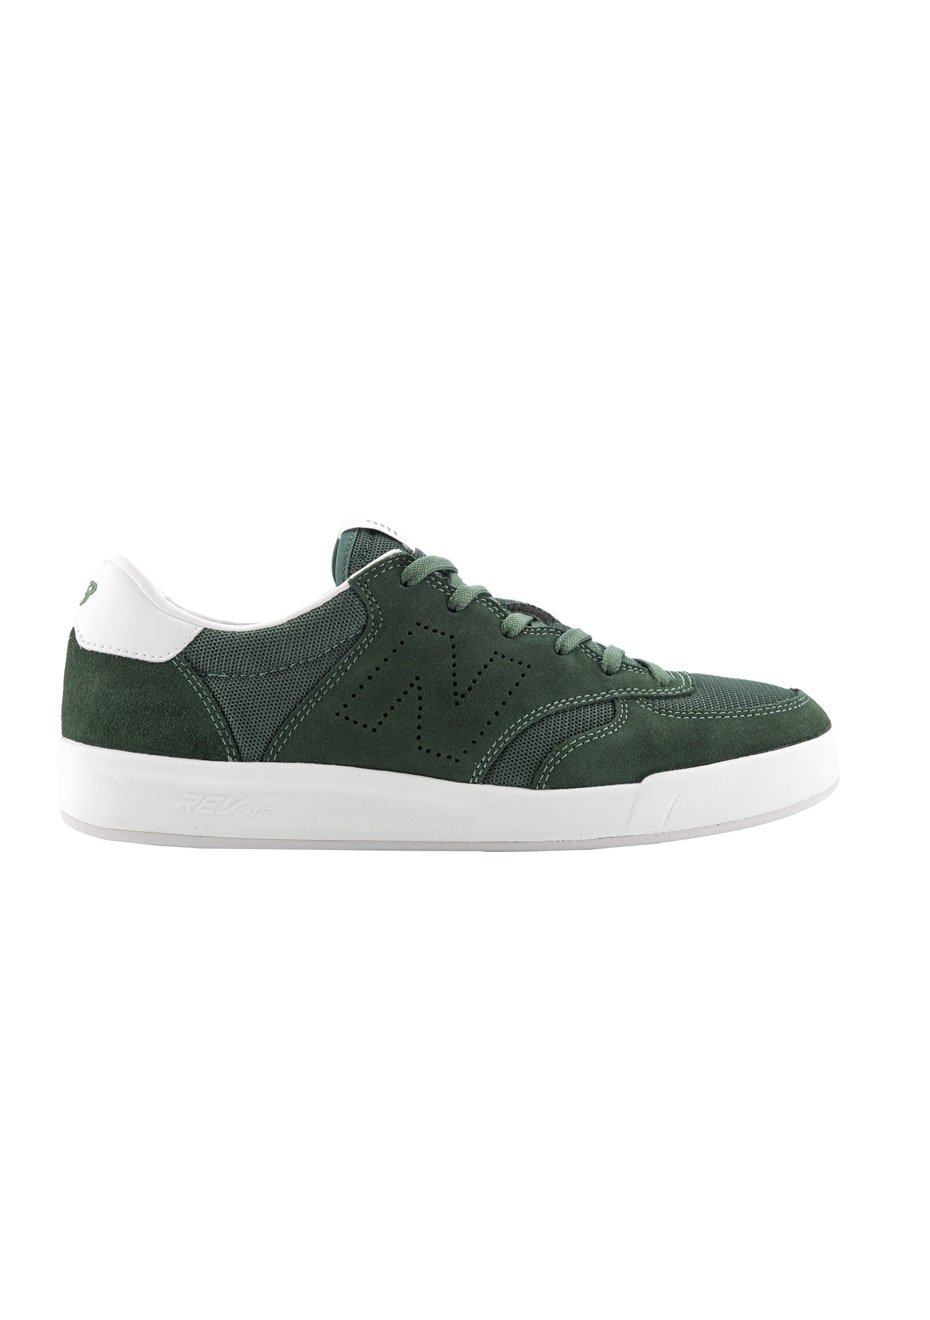 New Balance - Mens - Court 300 - Green